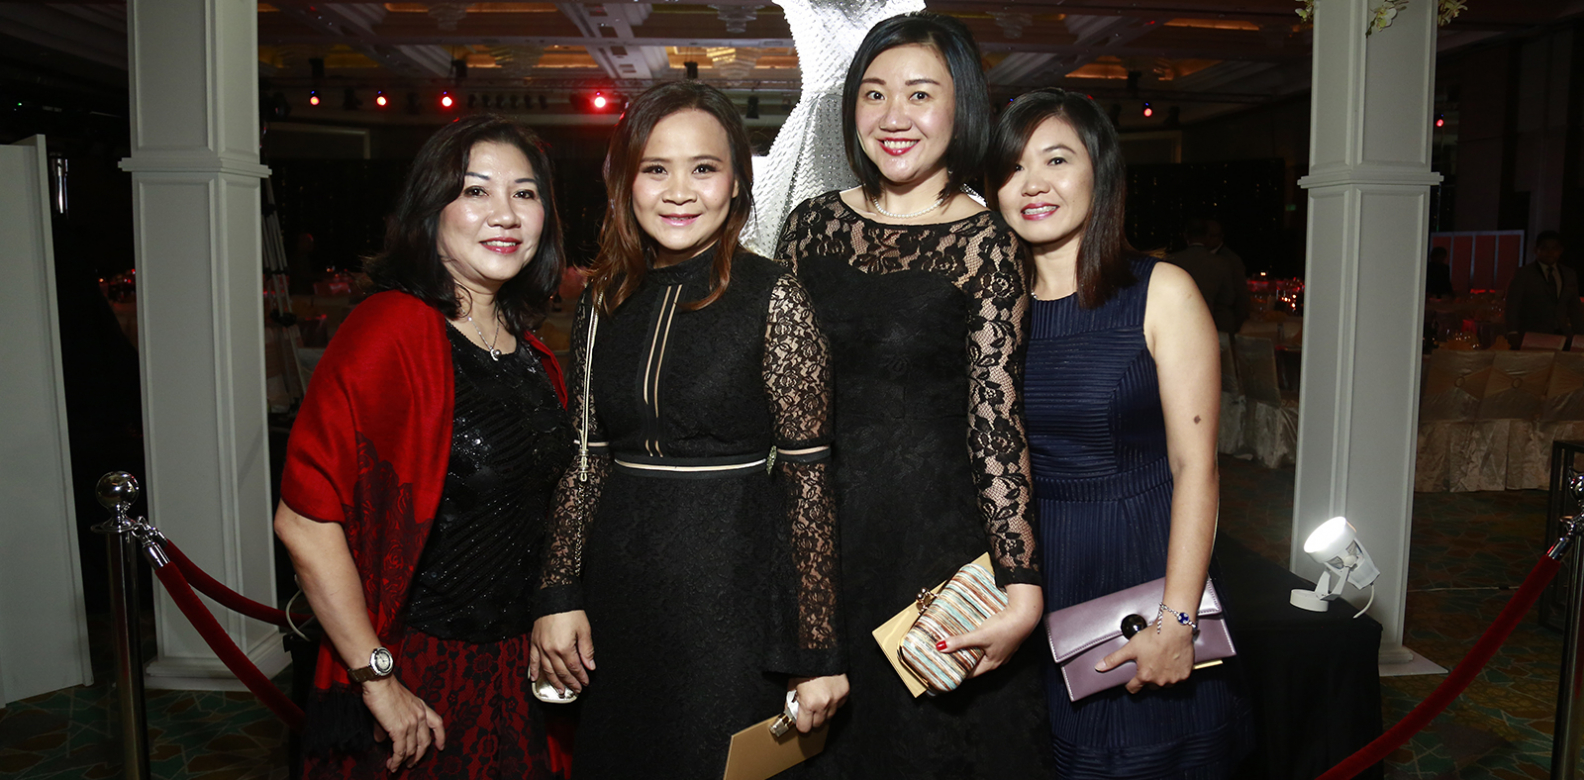 Stephanie Khor, Jane Chuang, Lee Pei Wan and Michelle Phua